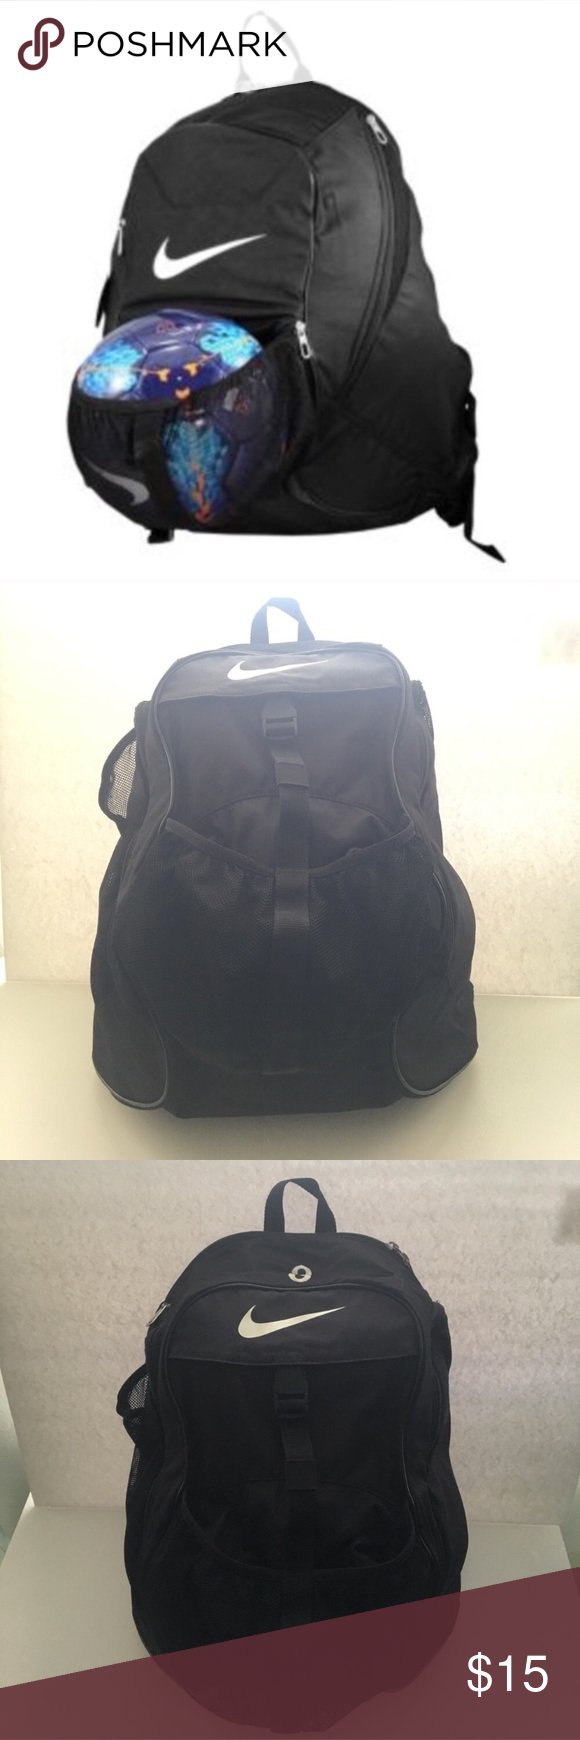 8503d0aff4 Black Nike Soccer Backpack Black Nike Soccer  Basketball  Volleyball  Backpack